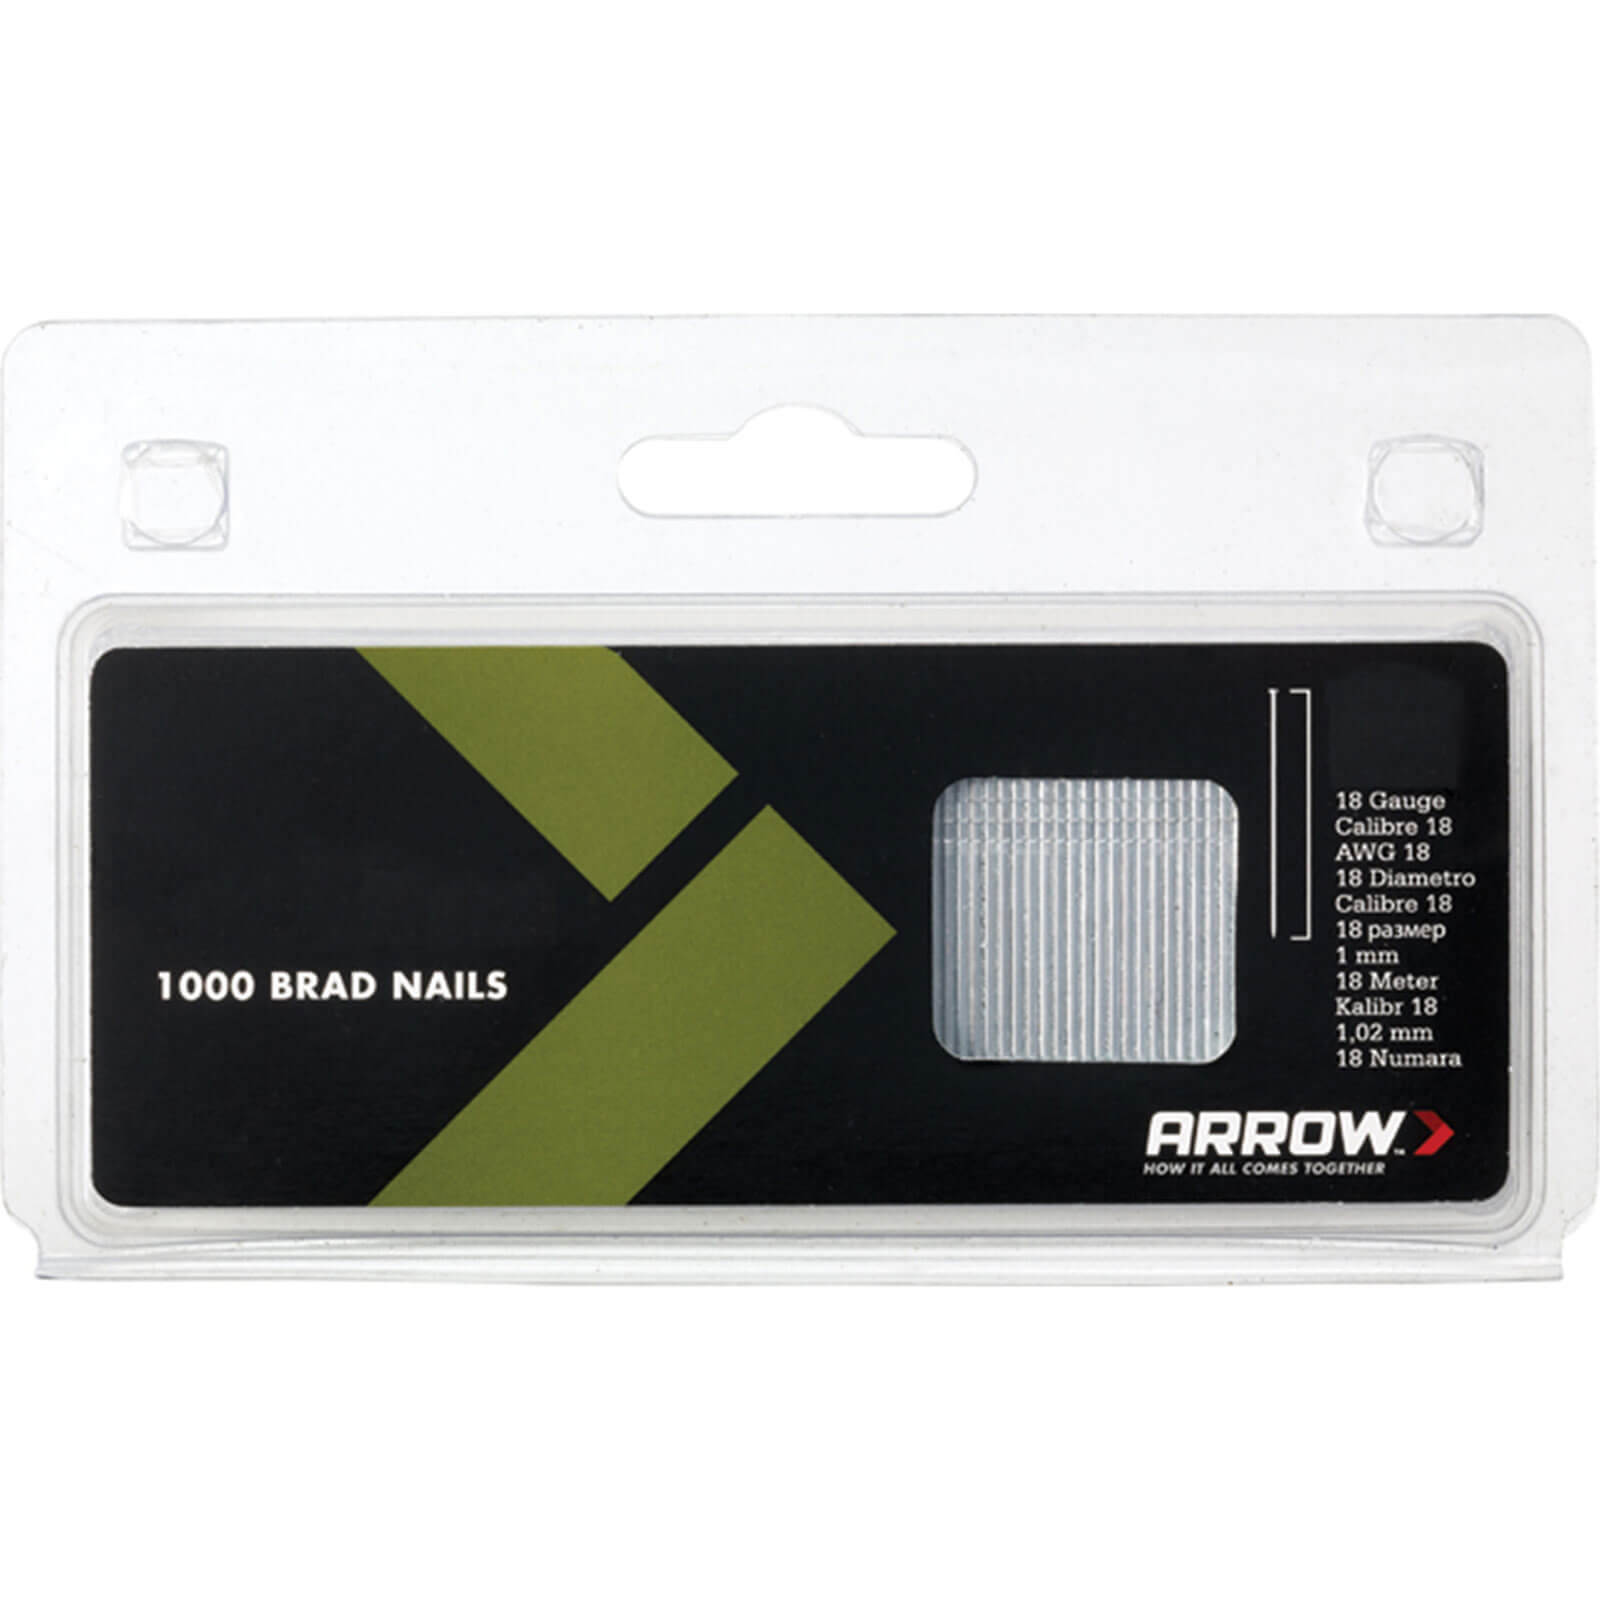 Image of Arrow 18 Gauge Brad Nails 50mm Pack of 1000